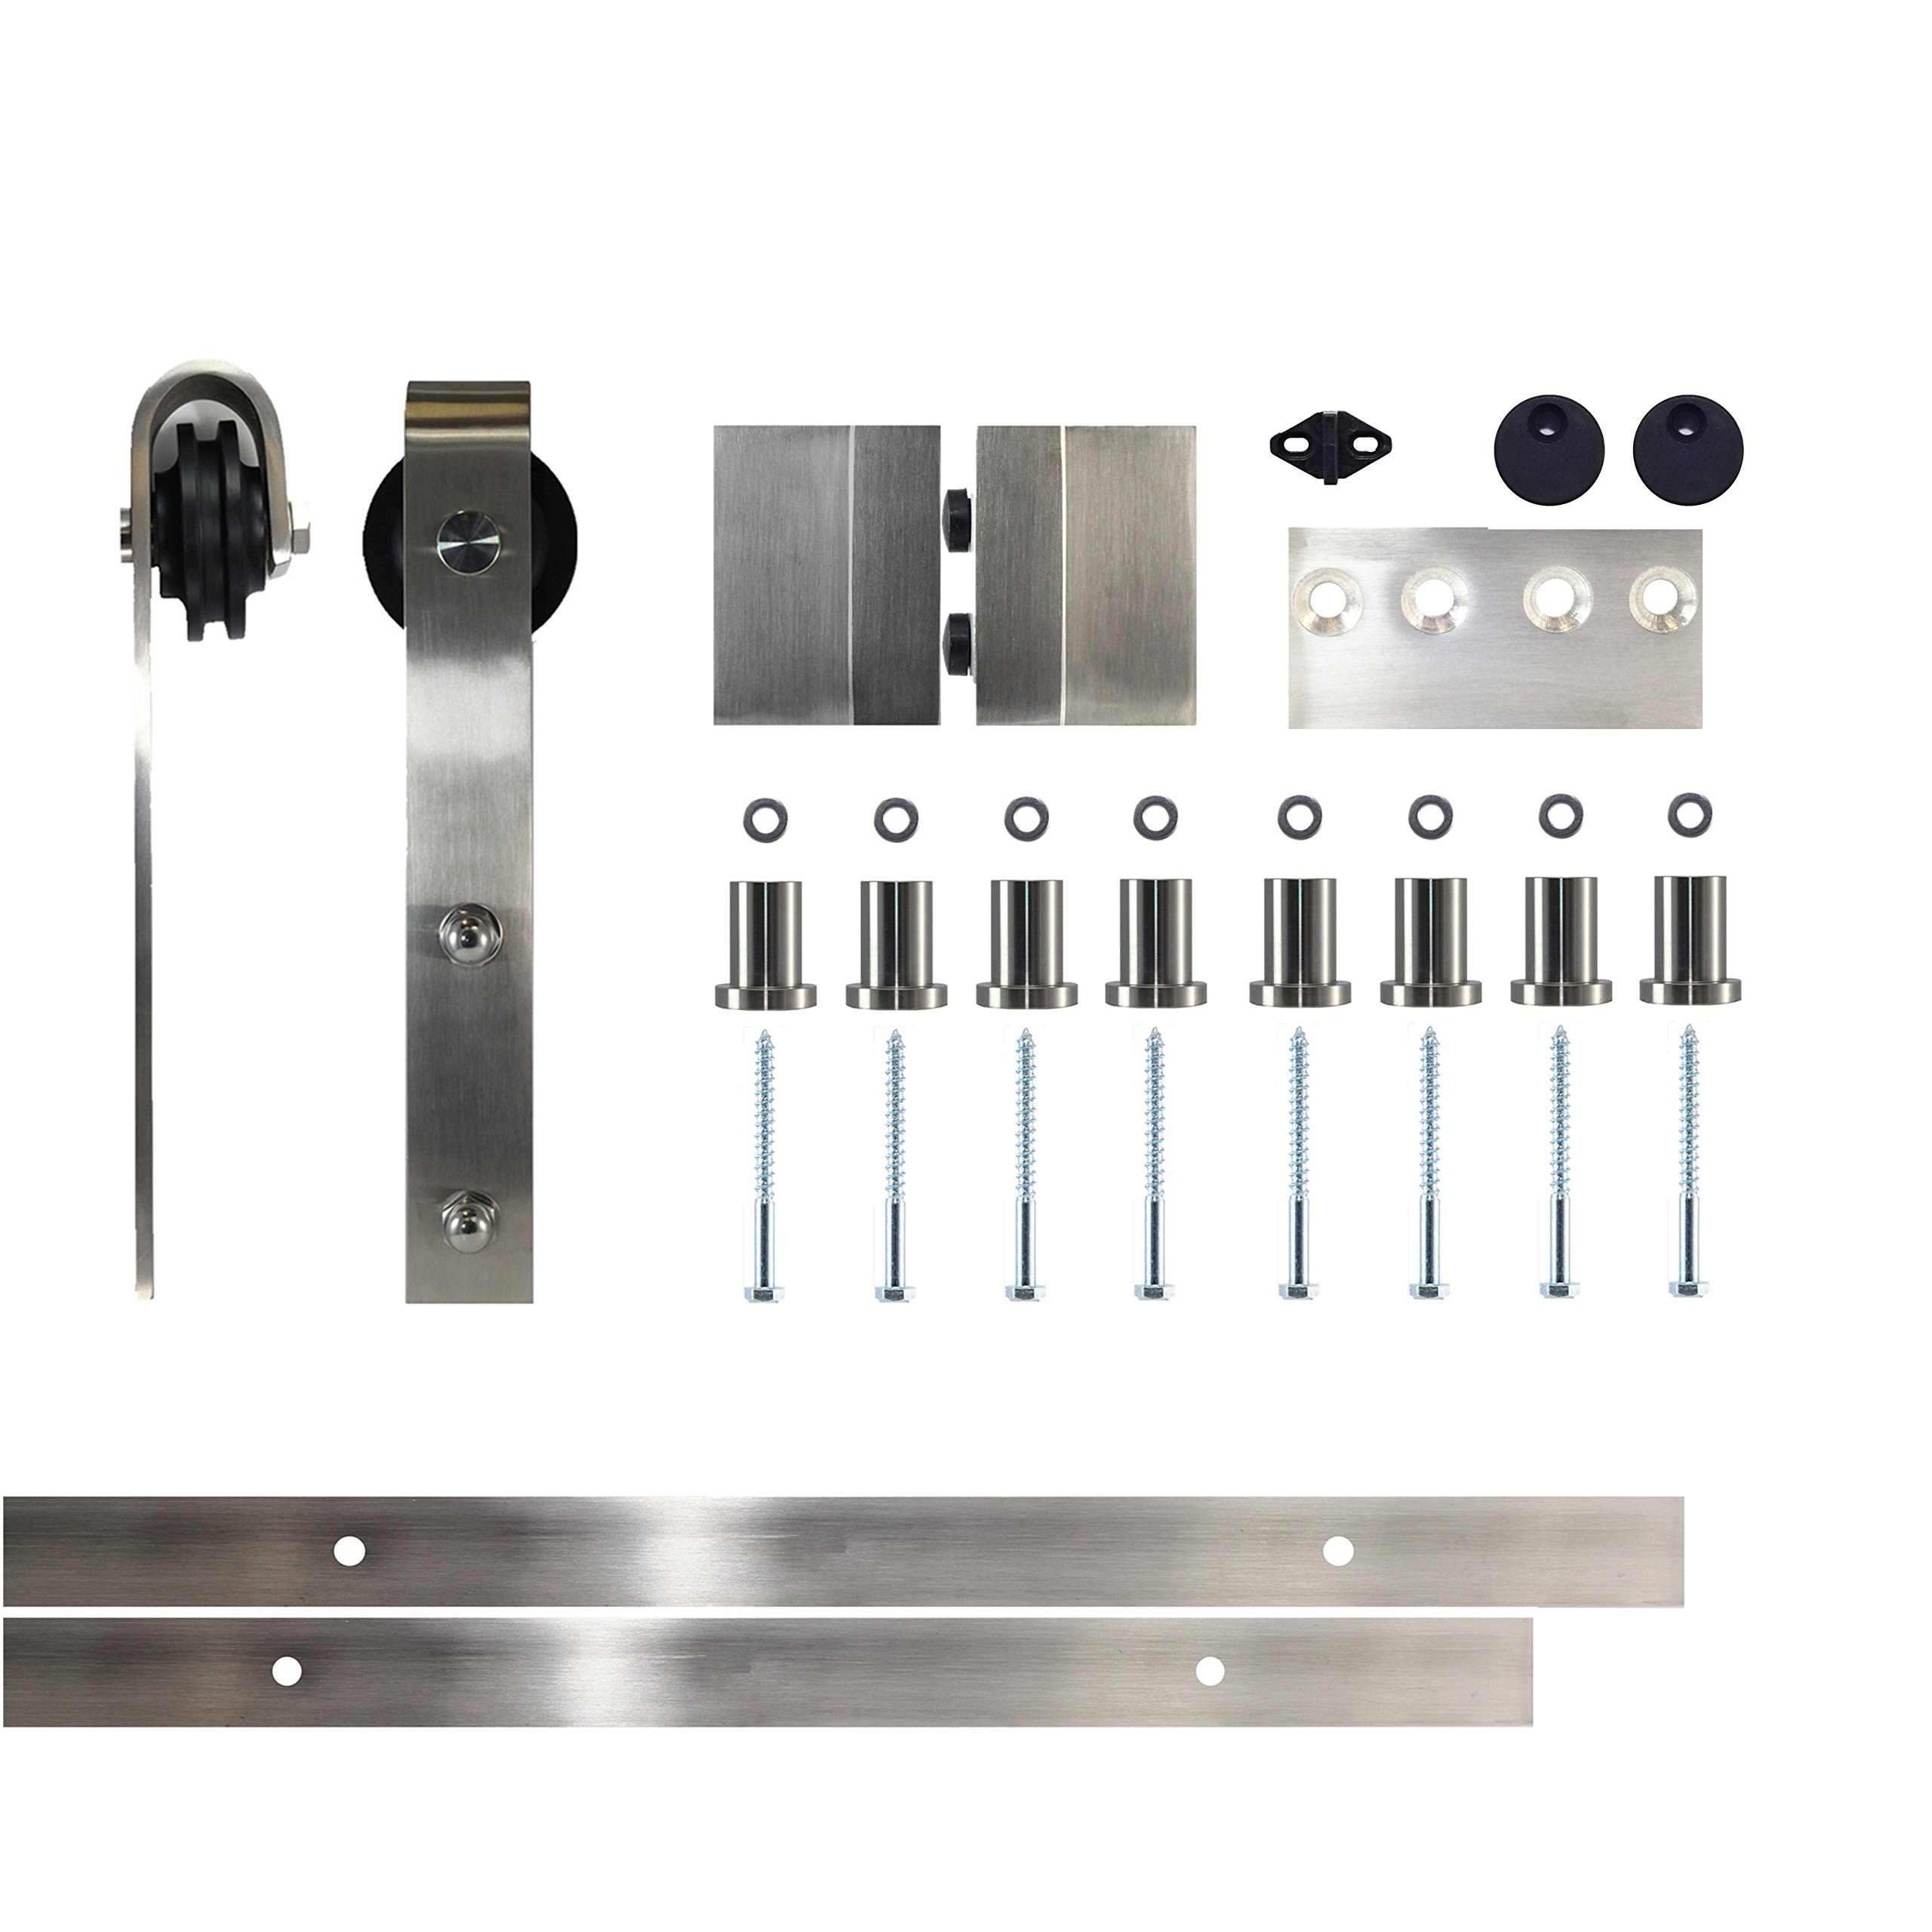 Vancleef 10FT Single Door Kit Sliding Barn Door Hardware, Classic Design, Stainless Steel, Industrial Strength, Interior and Exterior Use, With Quiet Glide Roller and Descriptive Installation Manual